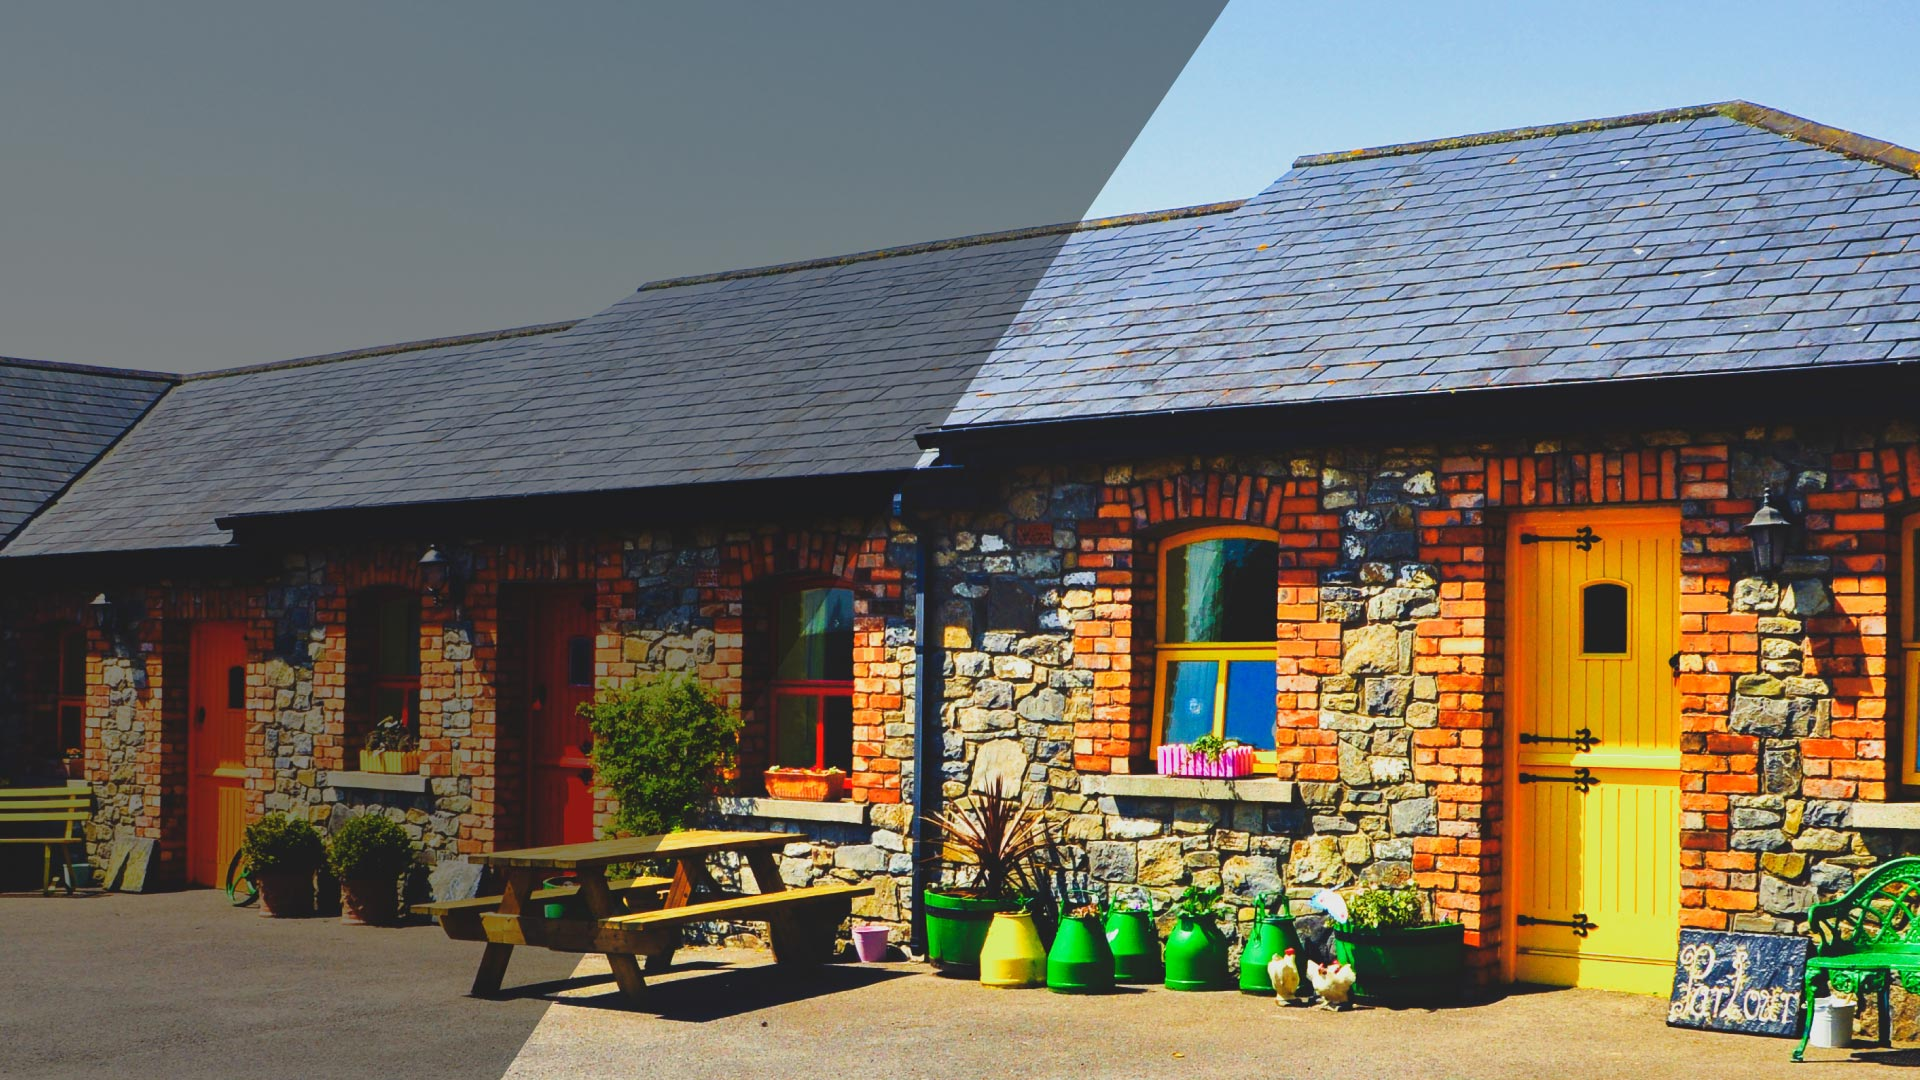 Slane Farm Hostel - Accommodation Boyne Valley - Hero Image